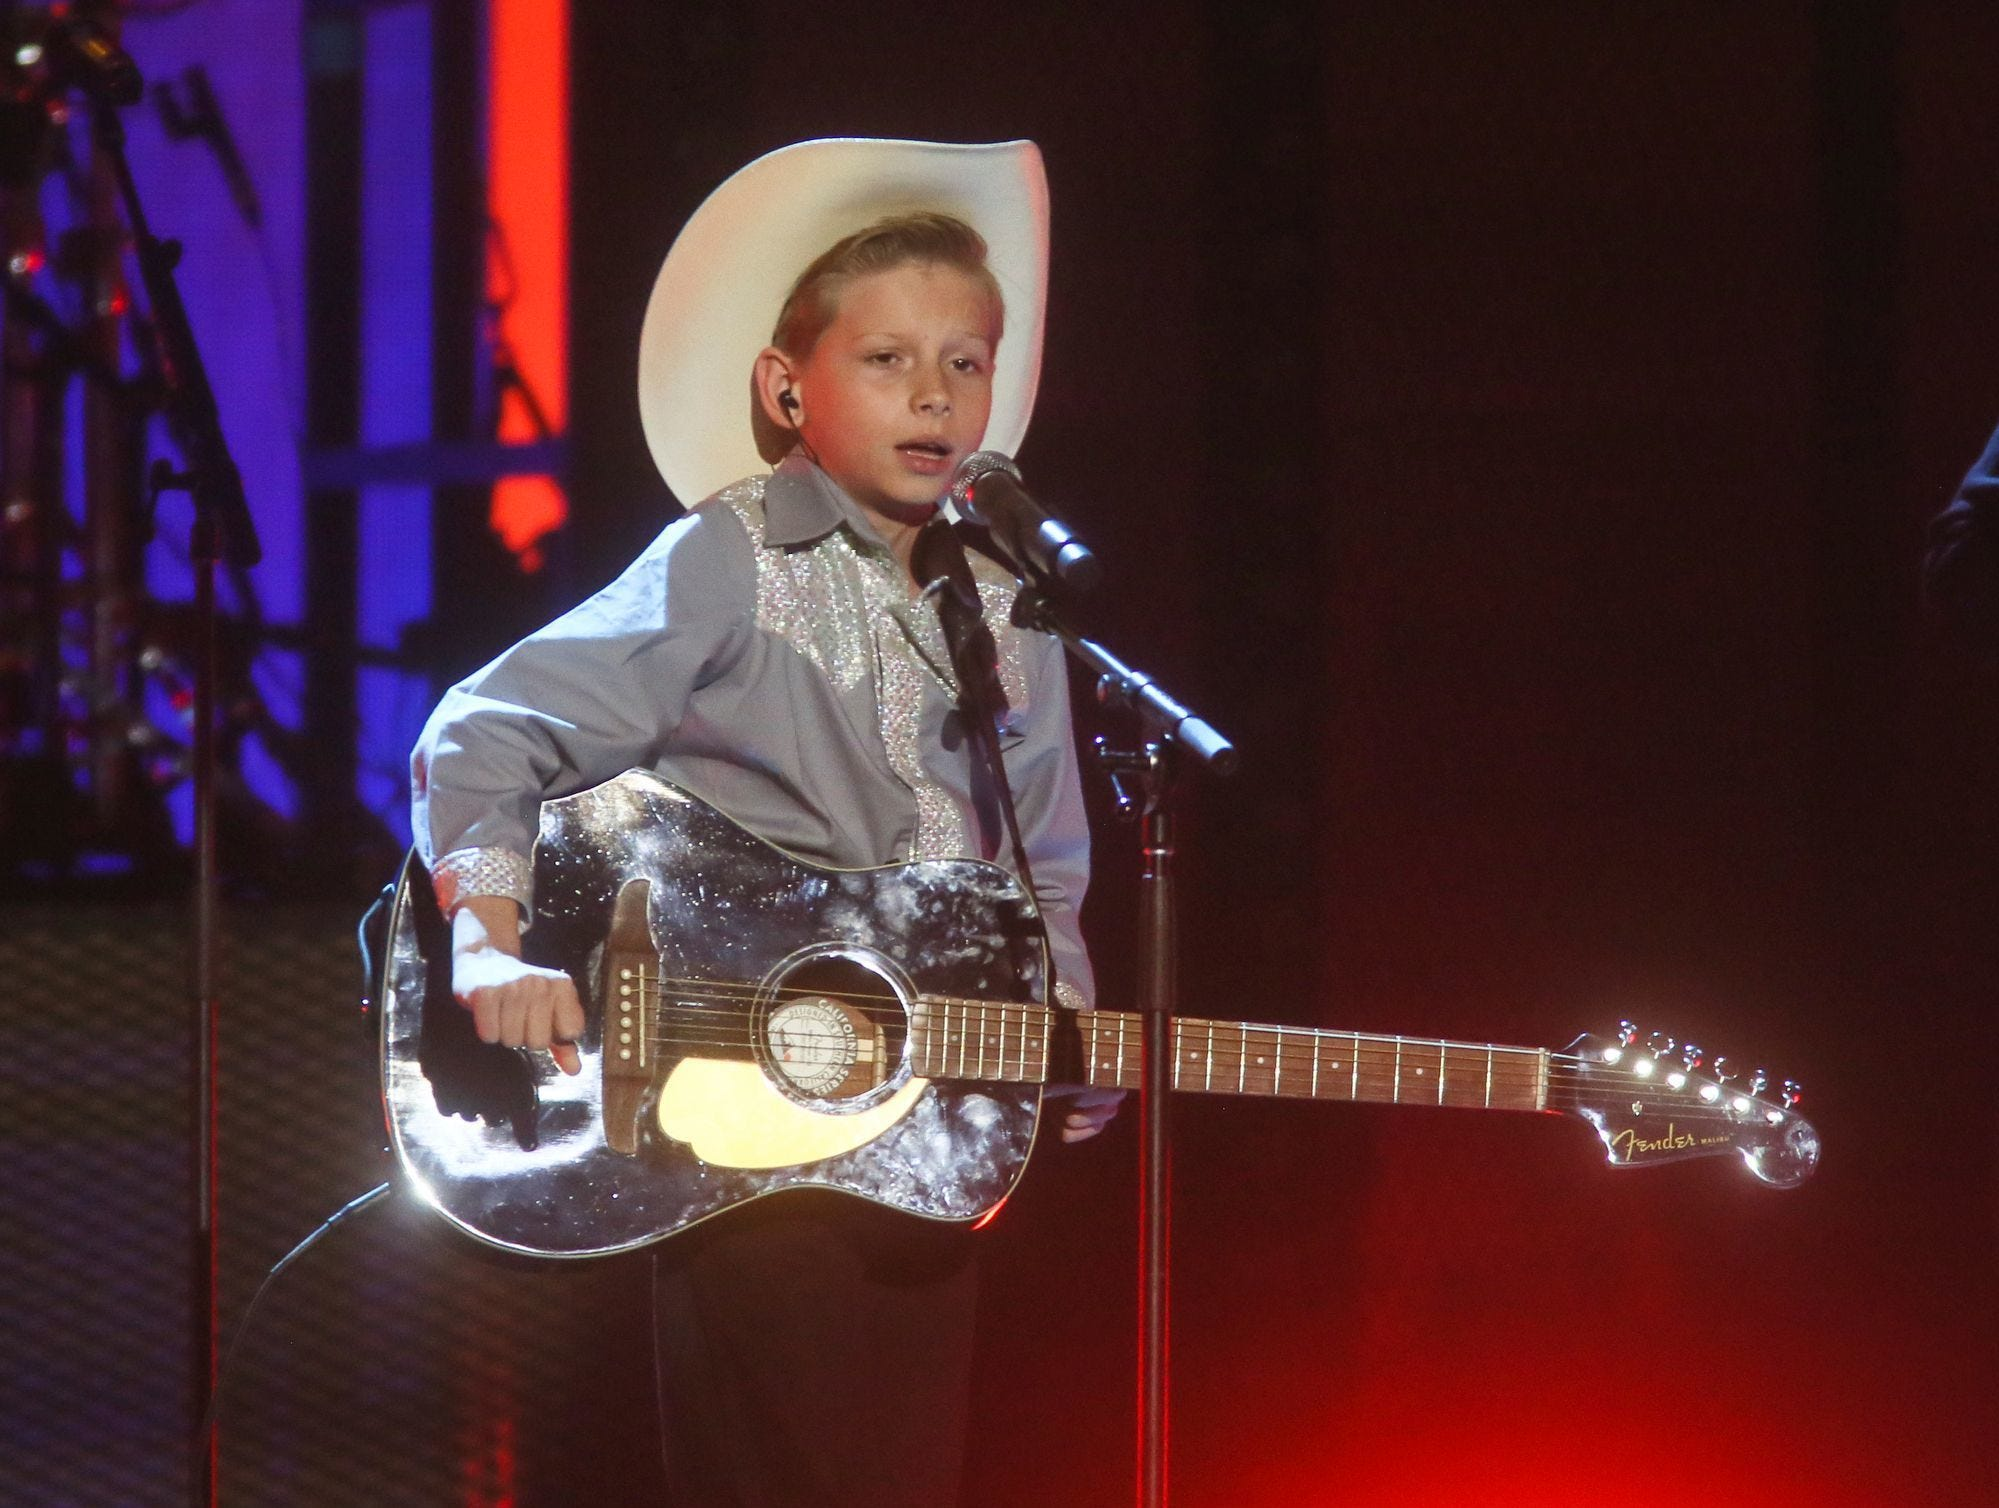 Mason Ramsey is scheduled to play the Chevy Riverfront Stage at CMA Fest 2019.